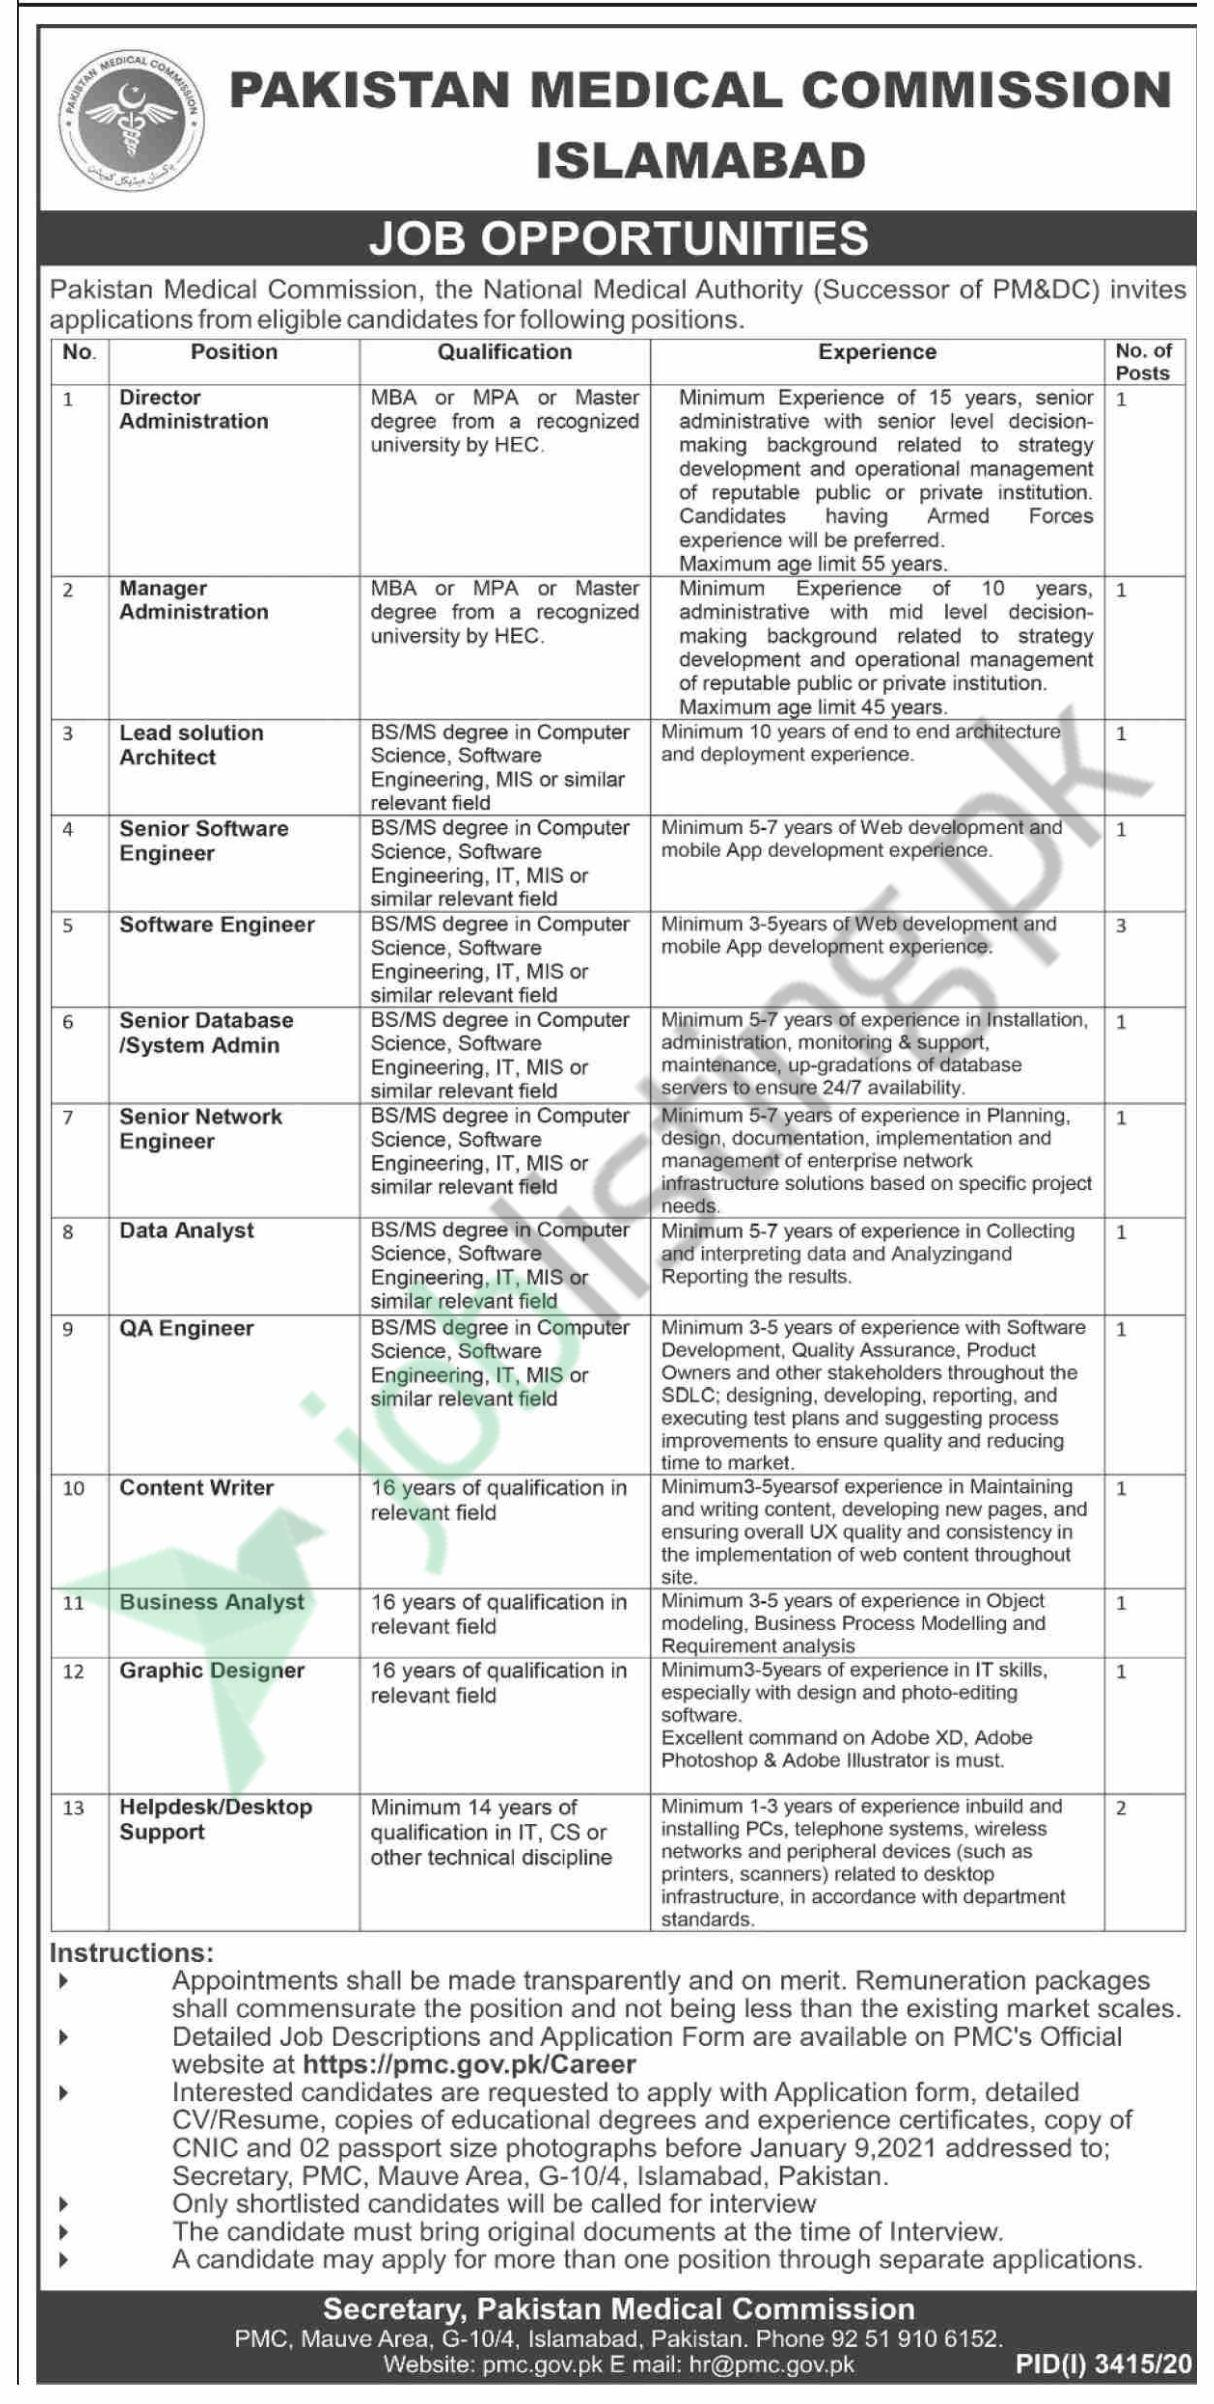 Jobs Opportunities in Pakistan Medical Commission PMC 2021